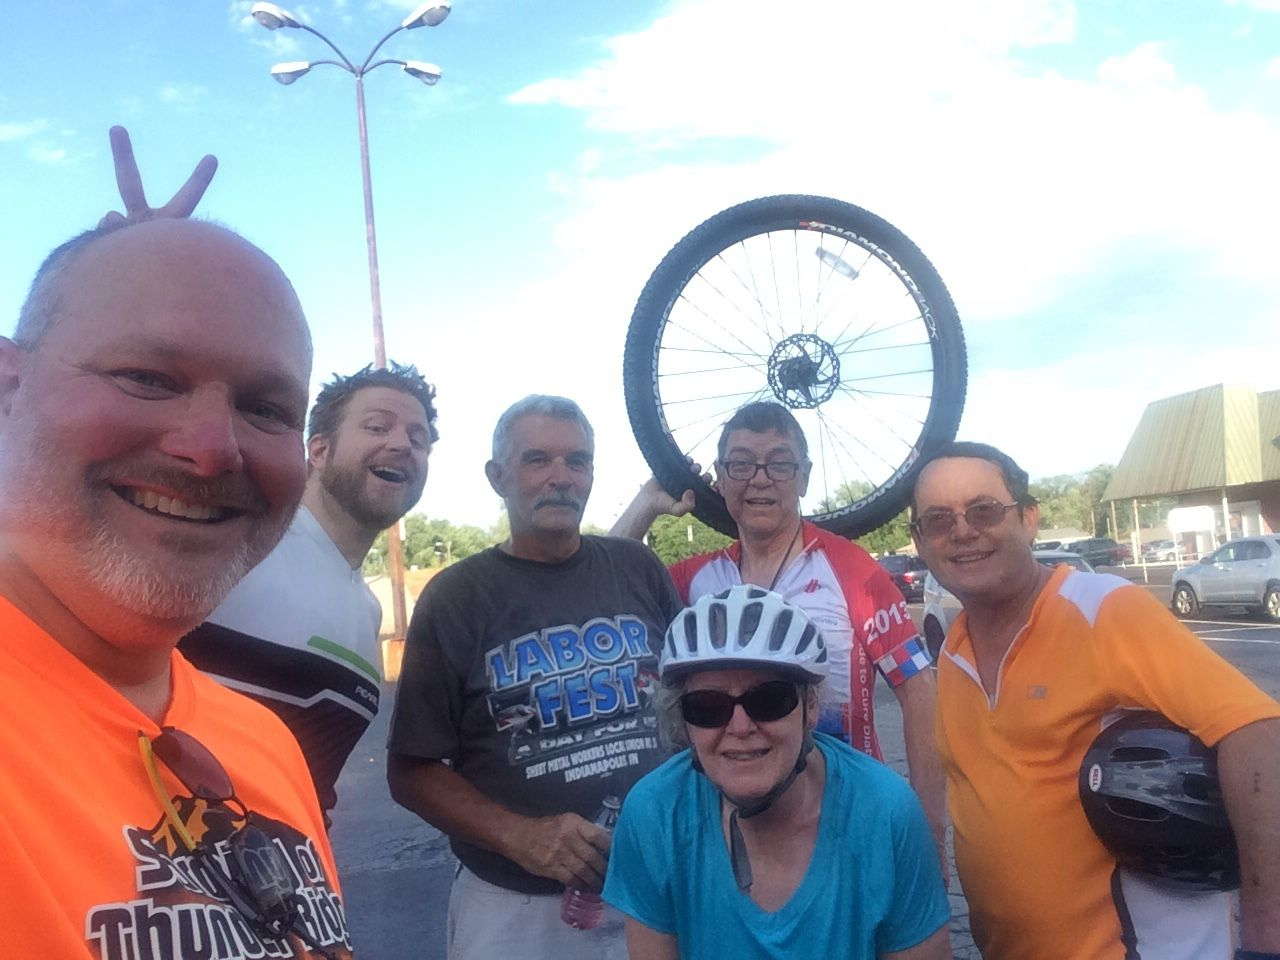 Indianapolis Beginner & Intermediate Cycling Meetup Group